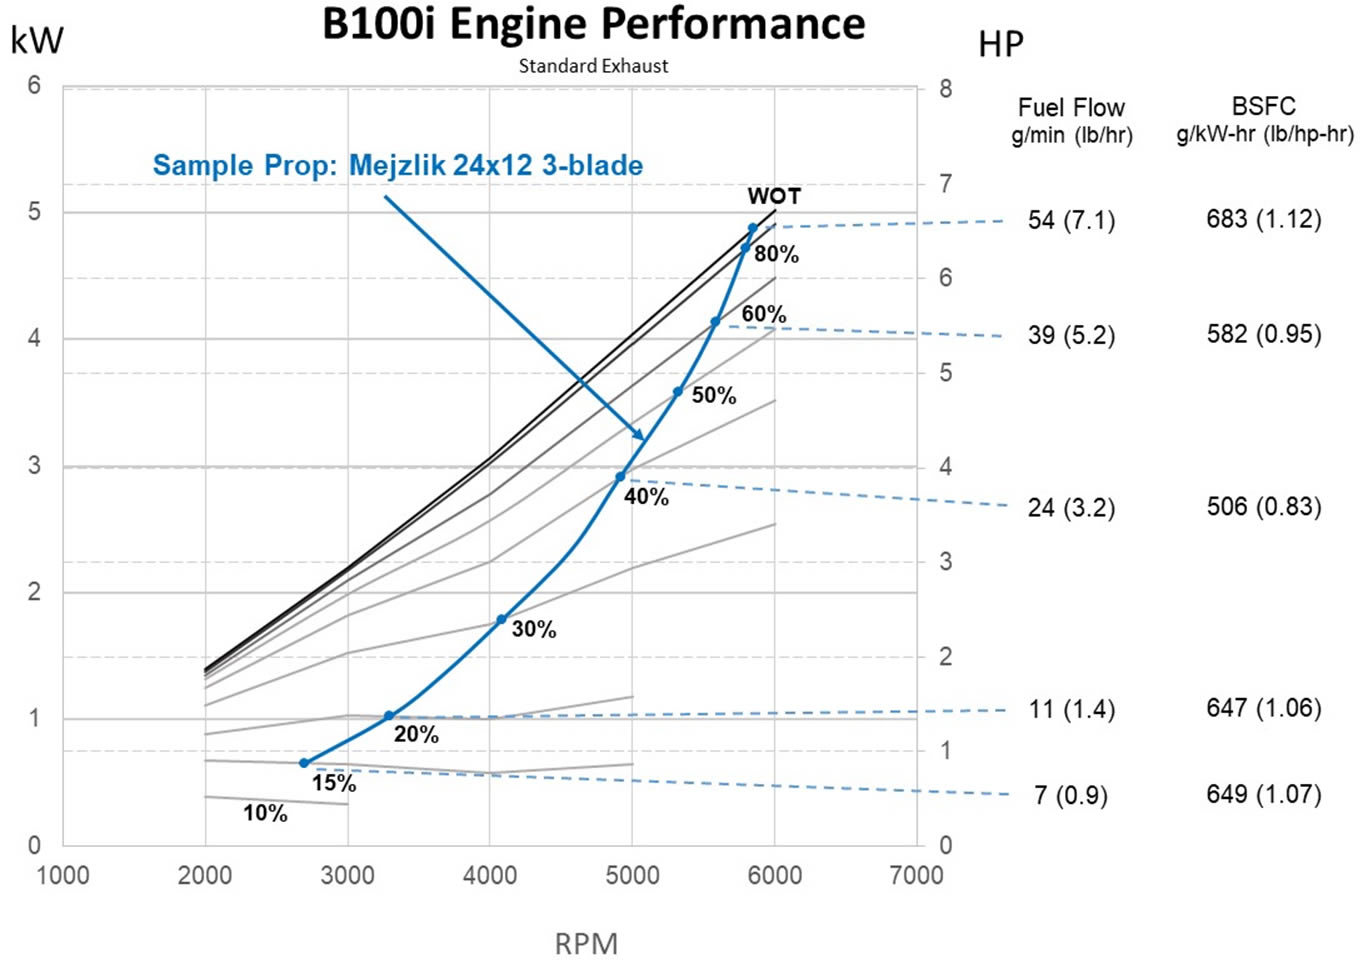 B100i UAV Fuel Injected Engine Performance - Standard Exhaust